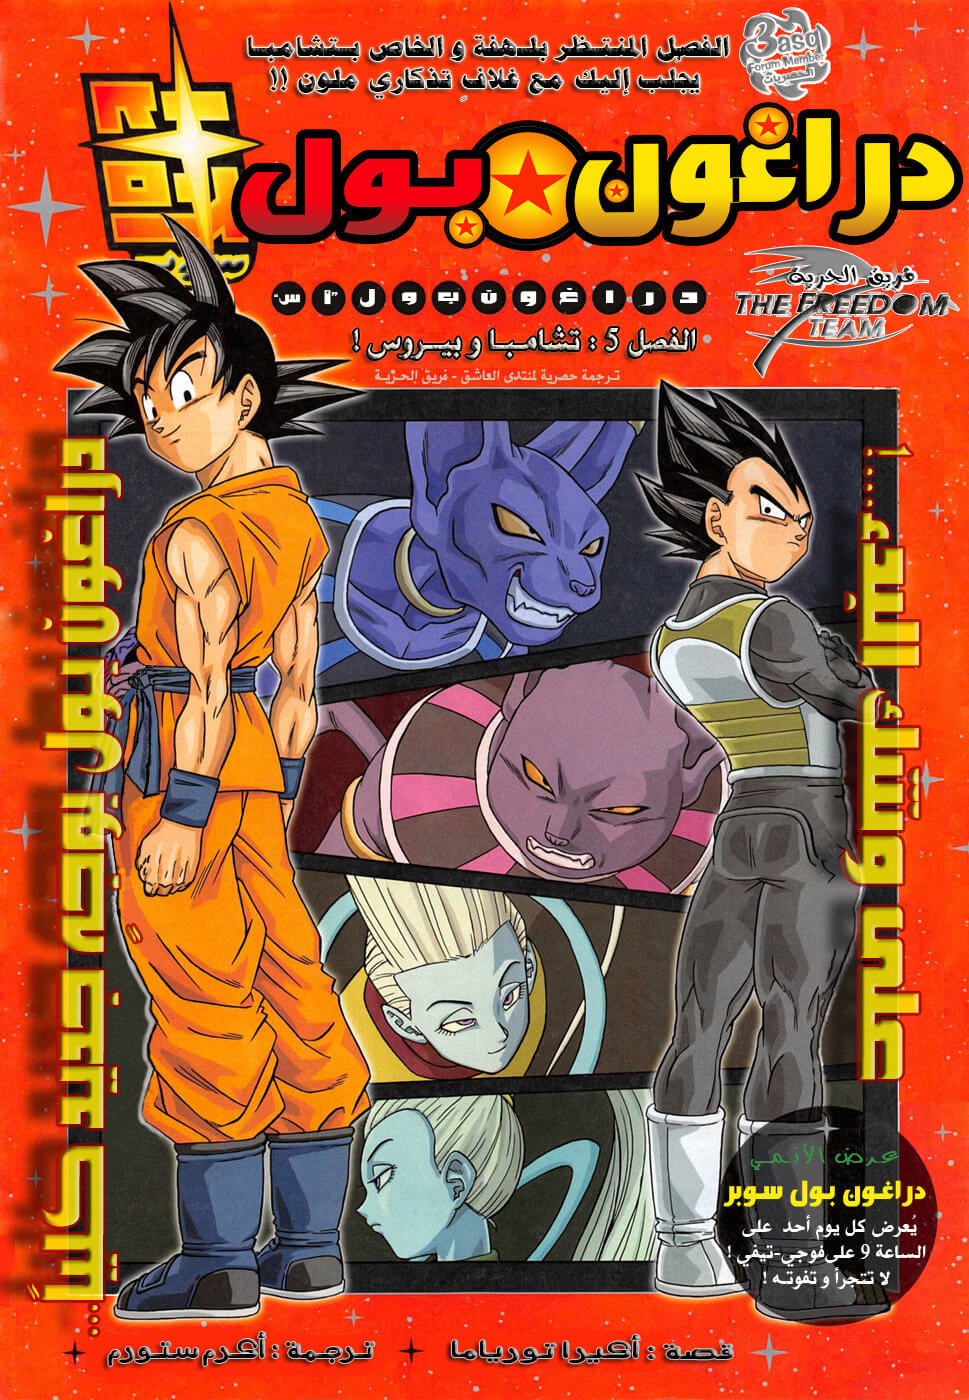 دراغون بول سوبر 05, Dragon Ball Super 05